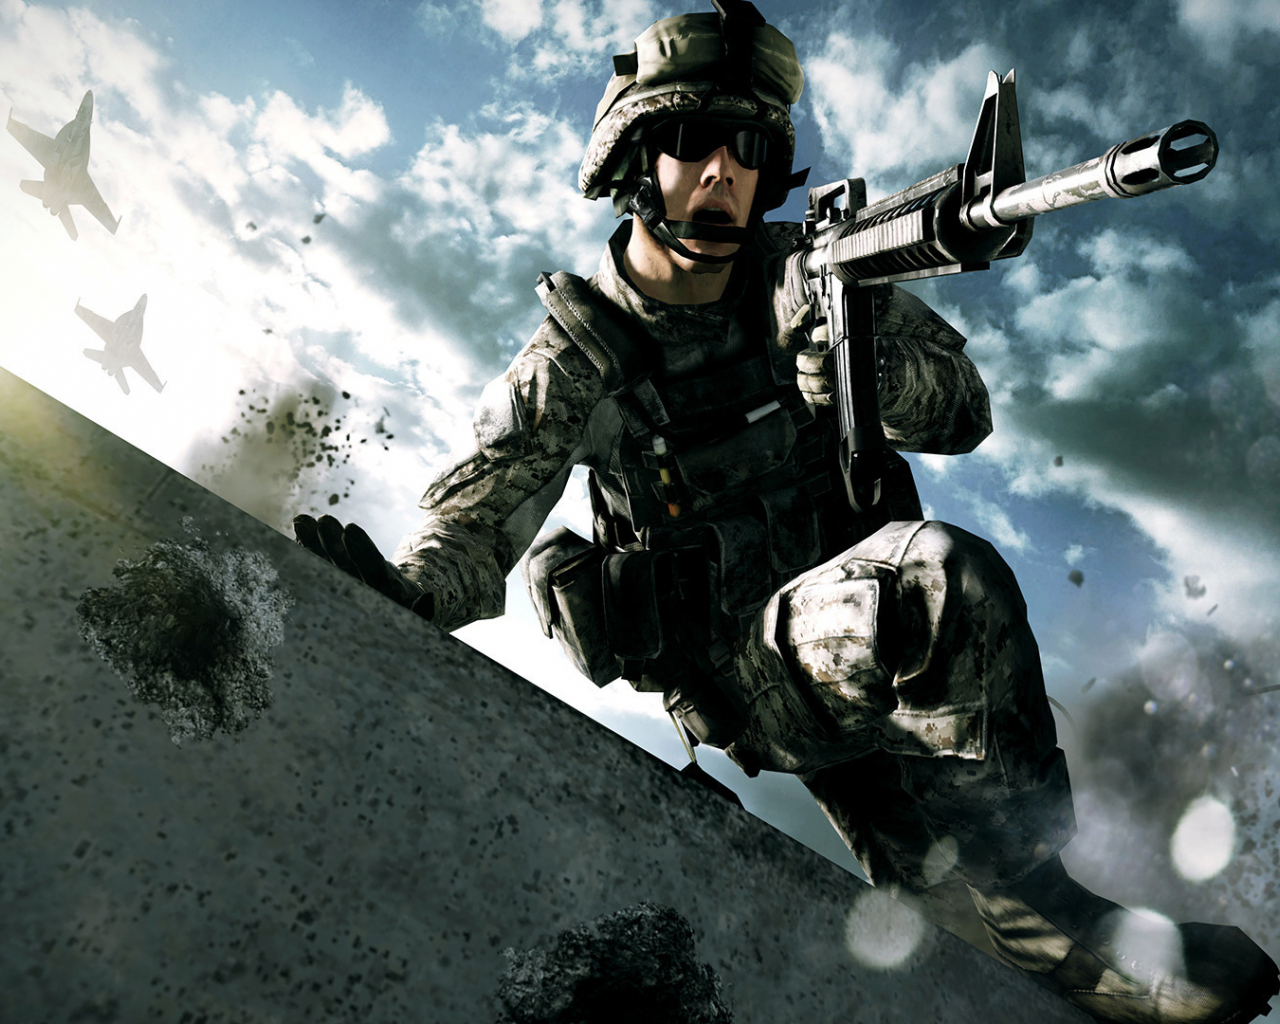 HD Battlefield 4 Wallpaper Wallpapers 1920x1080